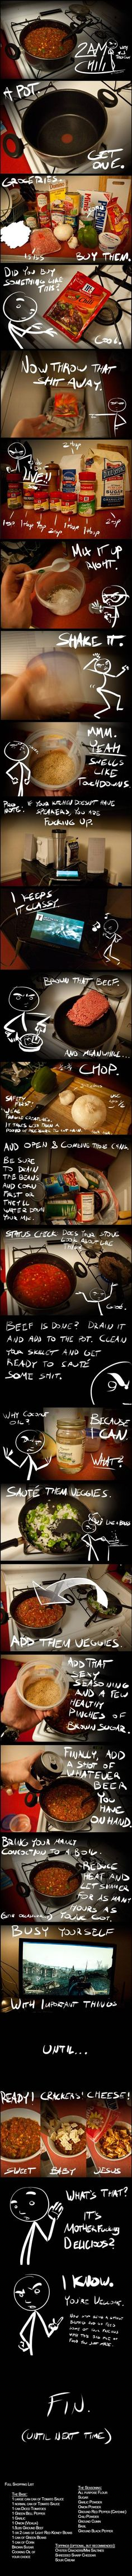 Even if you aren't in need of a chili recipe, you HAVE to read through this. So funny